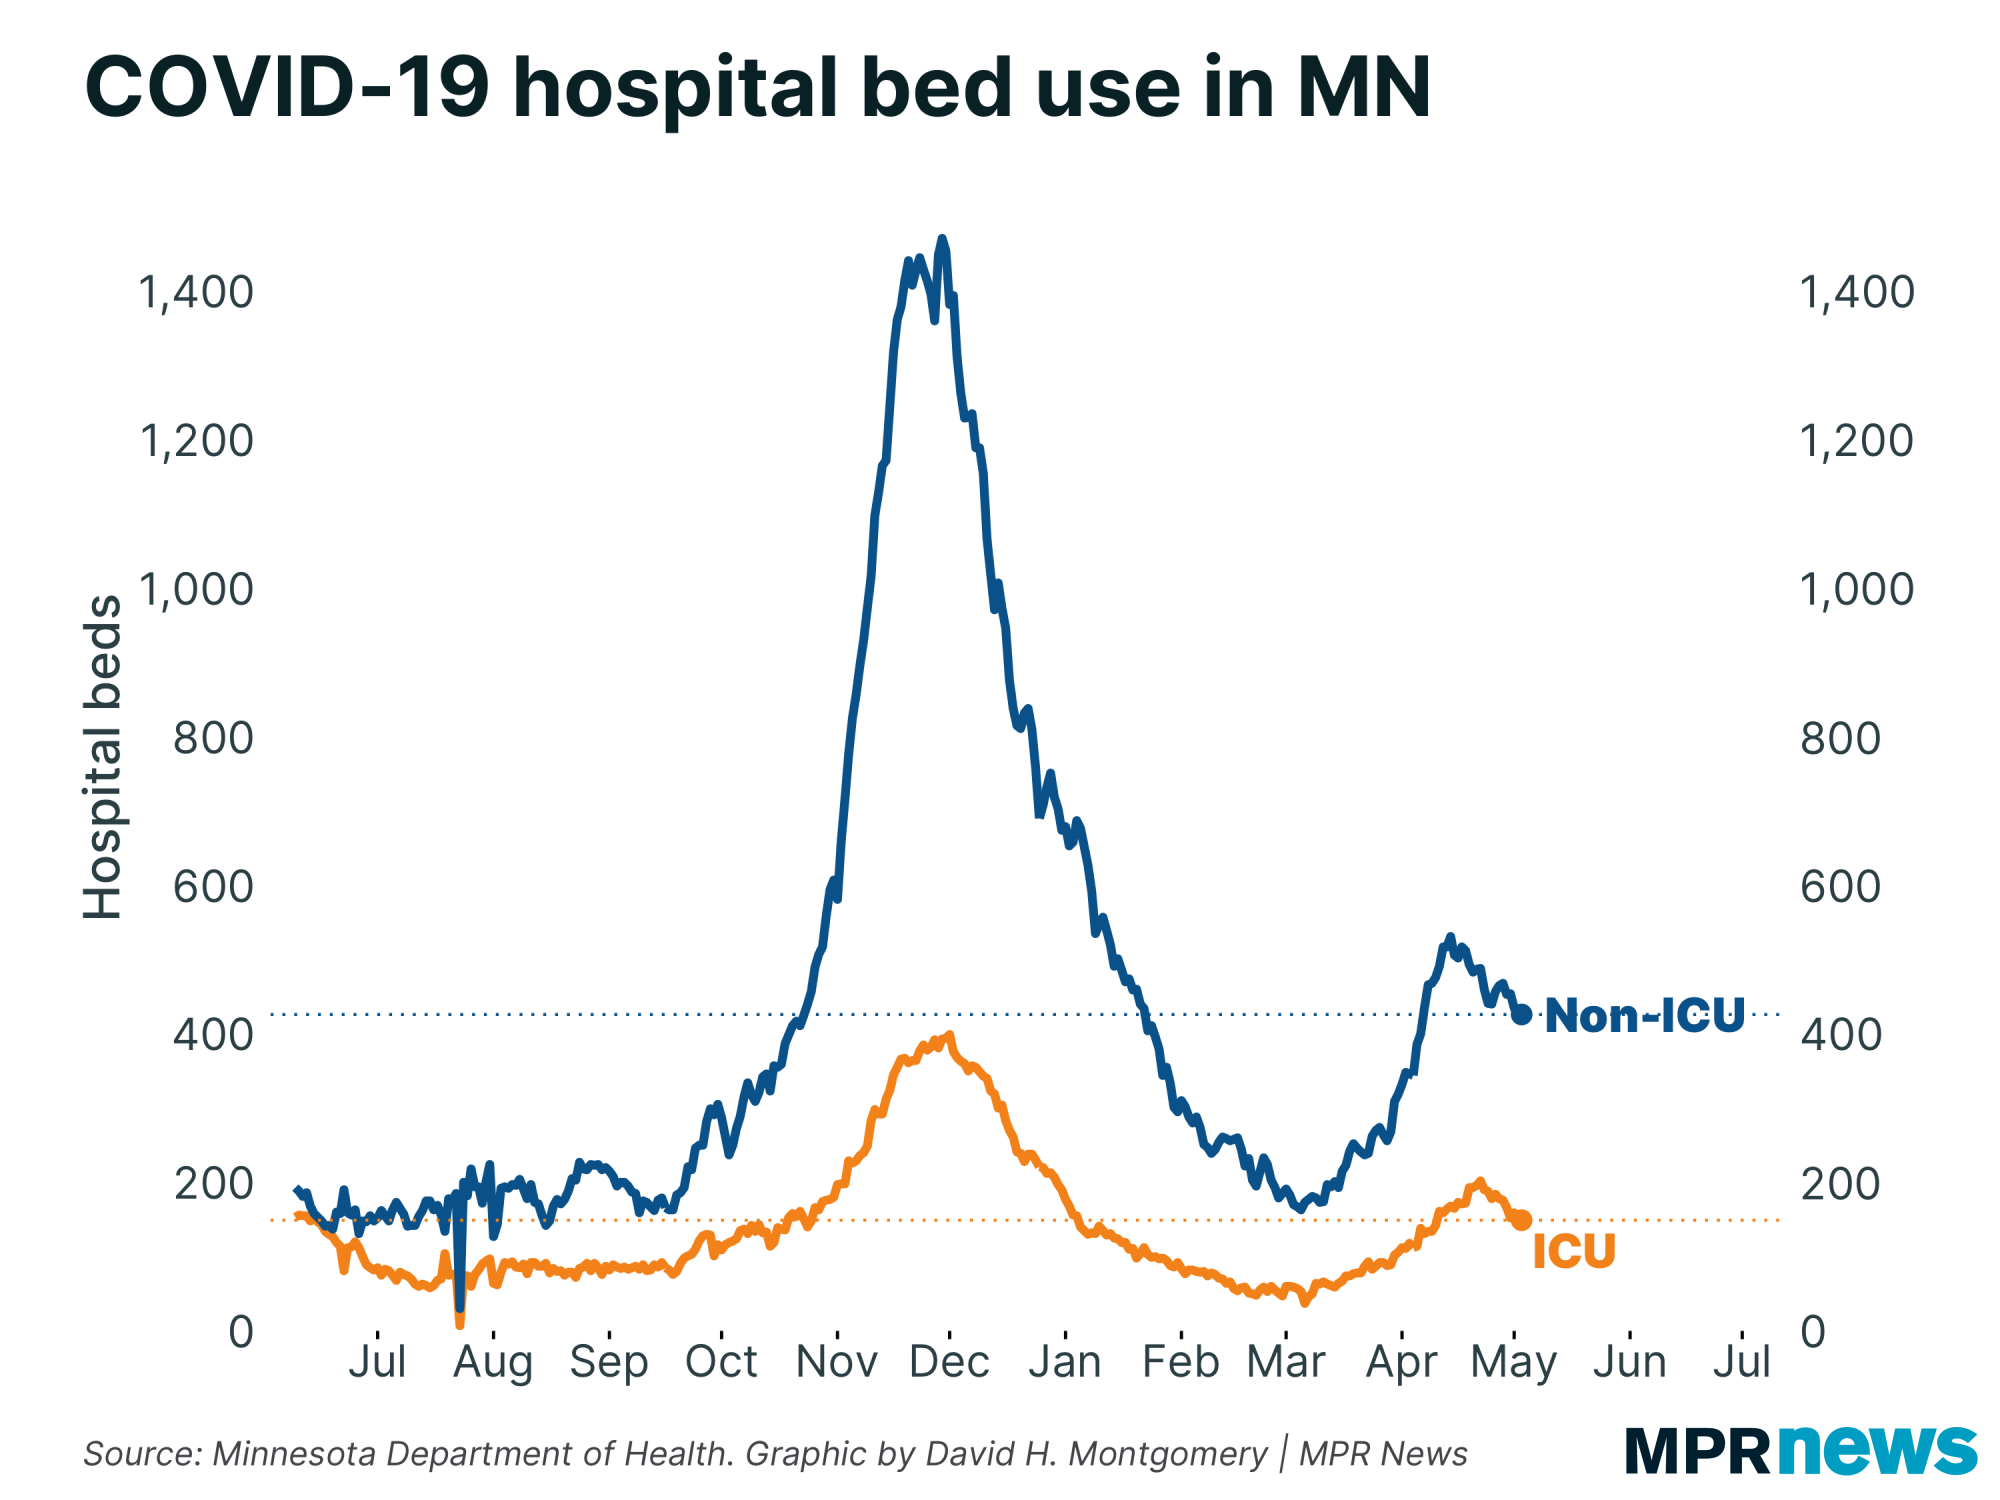 COVID-19 hospital bed use in Minnesota